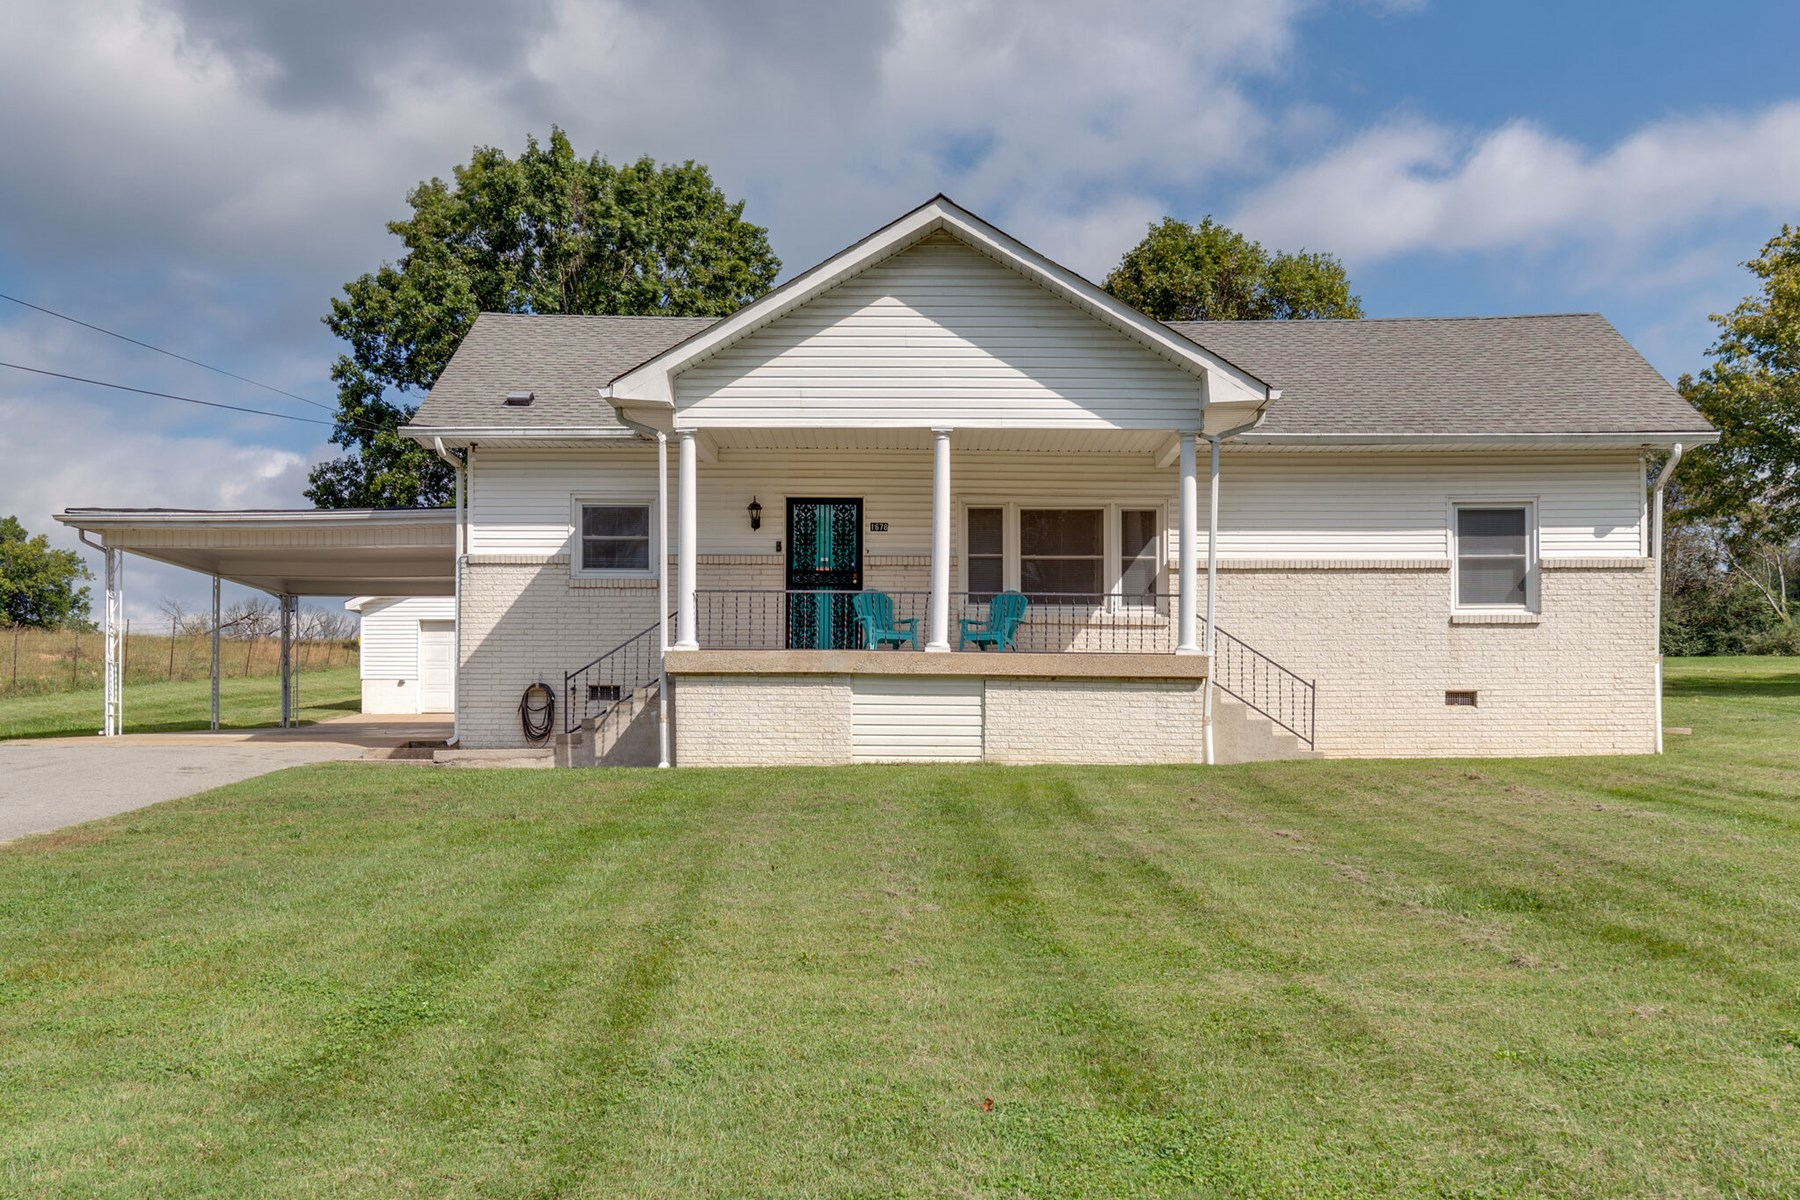 Country Home on Acre Lot for Sale in Columbia, Tennessee